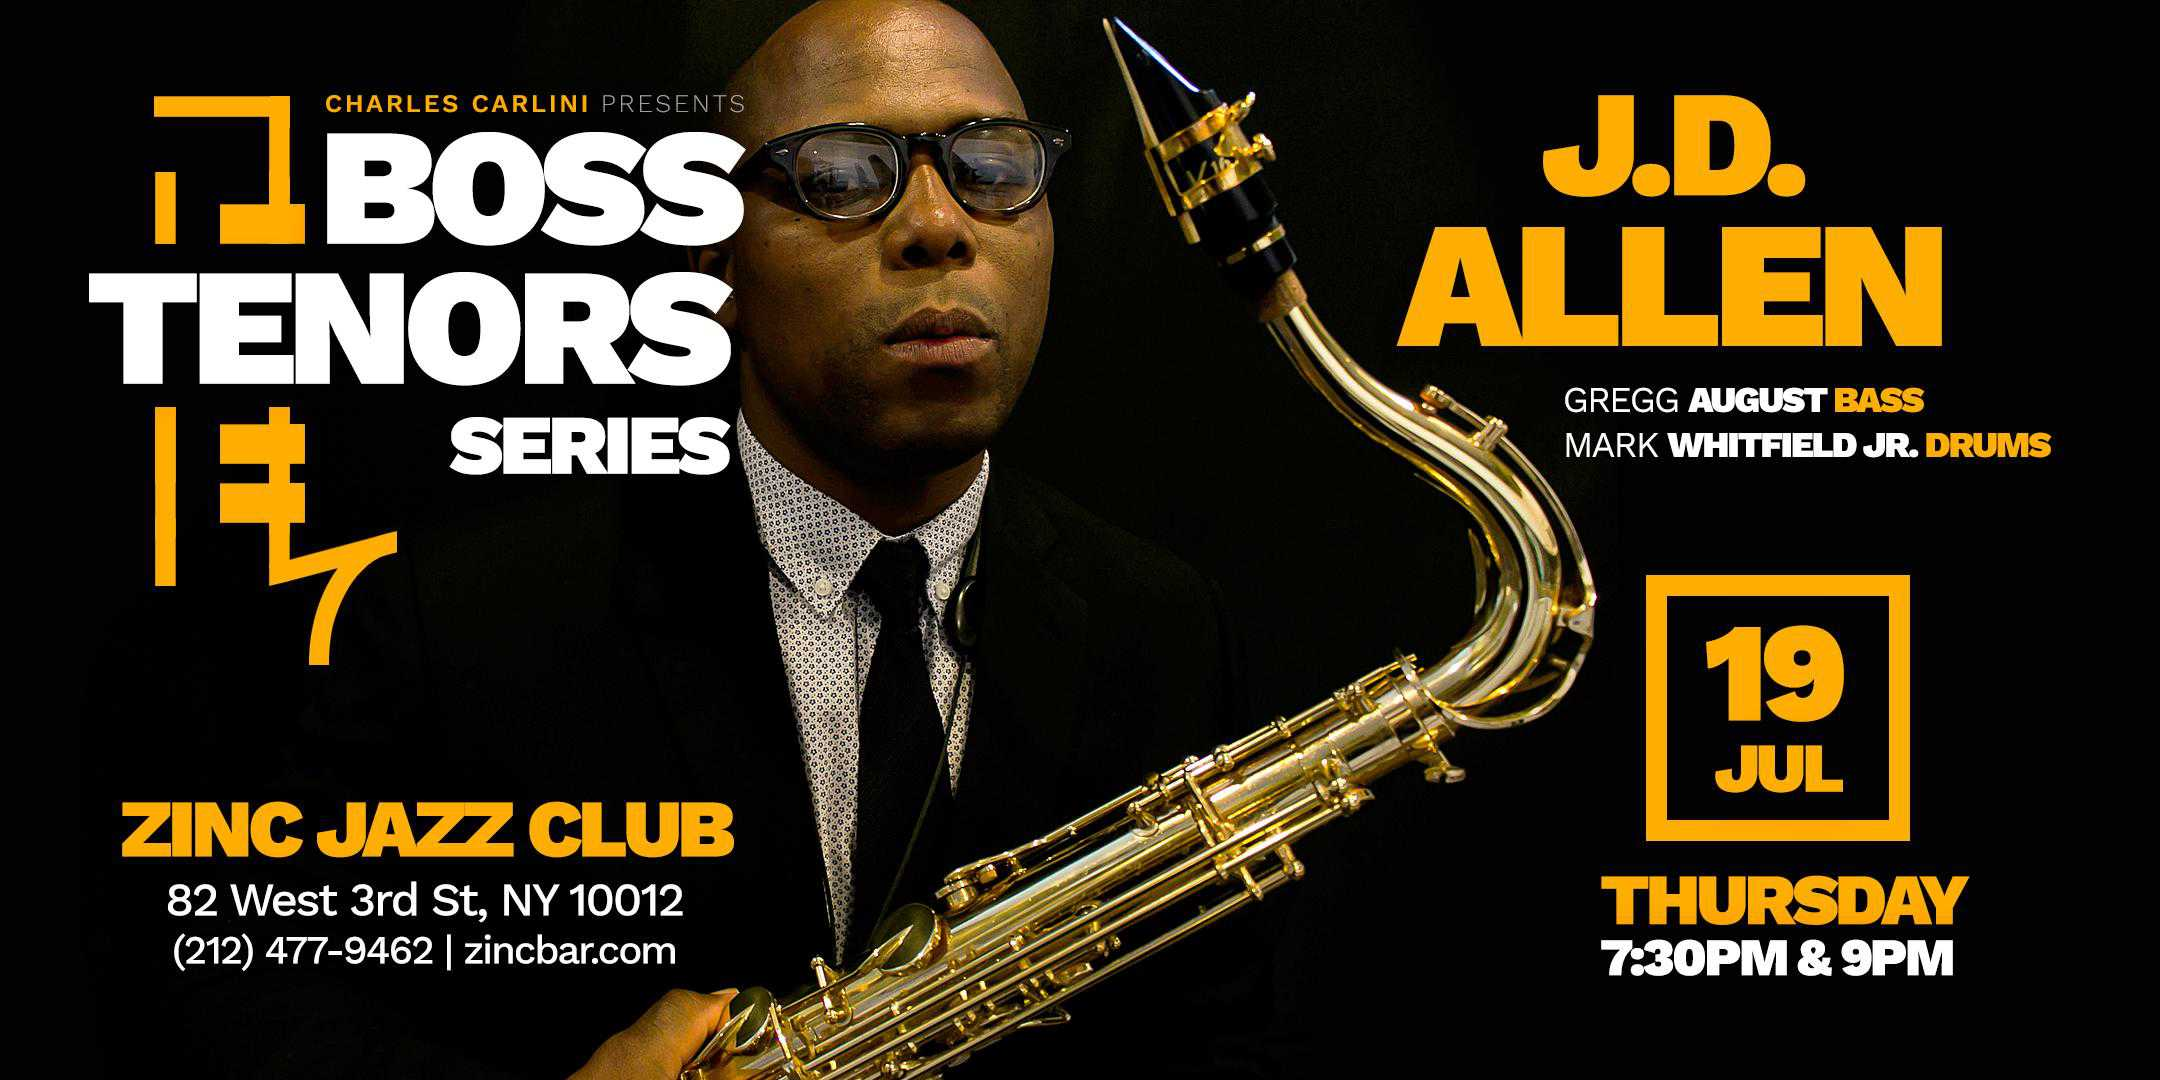 Boss Tenors Series: J.D. Allen Trio